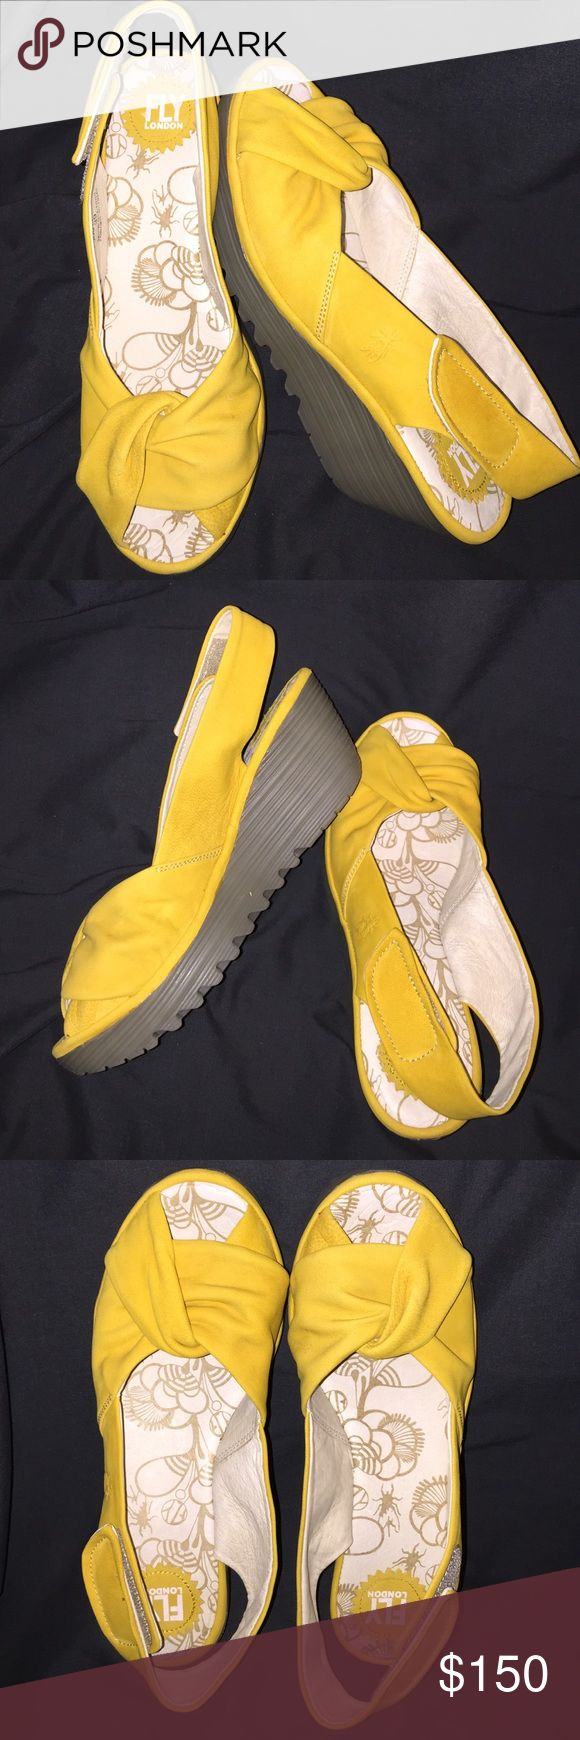 Fly London sling back wedge sandal Super soft leather. Velcro closures by heel. Mustard yellow. New. Never worn. Fly London Shoes Sandals